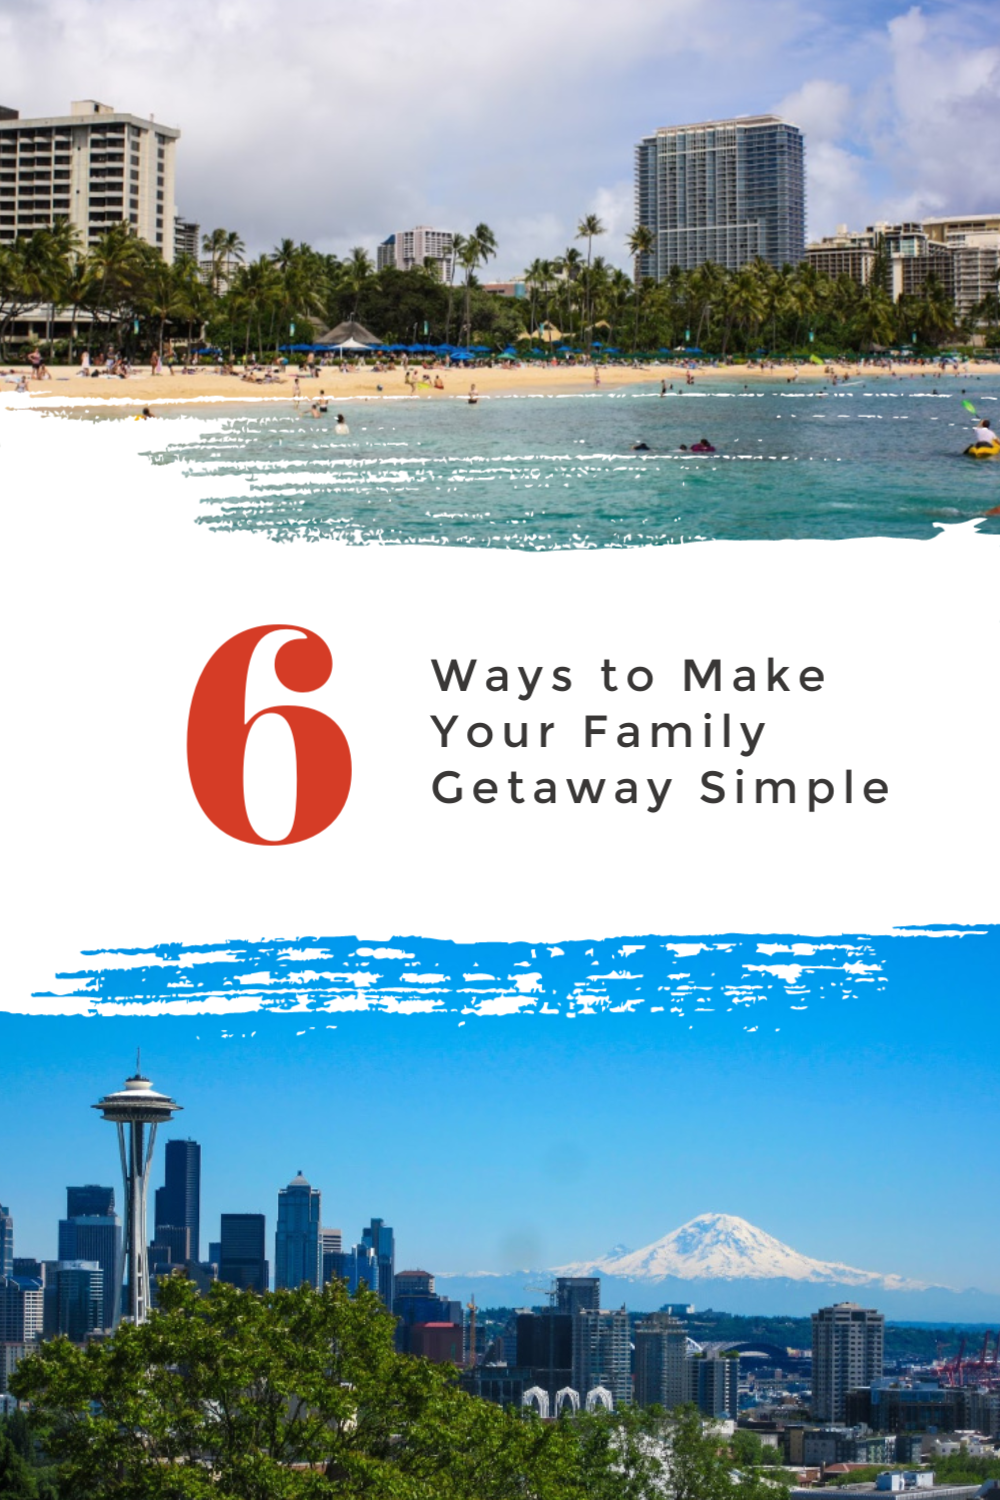 Ways to Make Your Family Getaway Simple & Easier